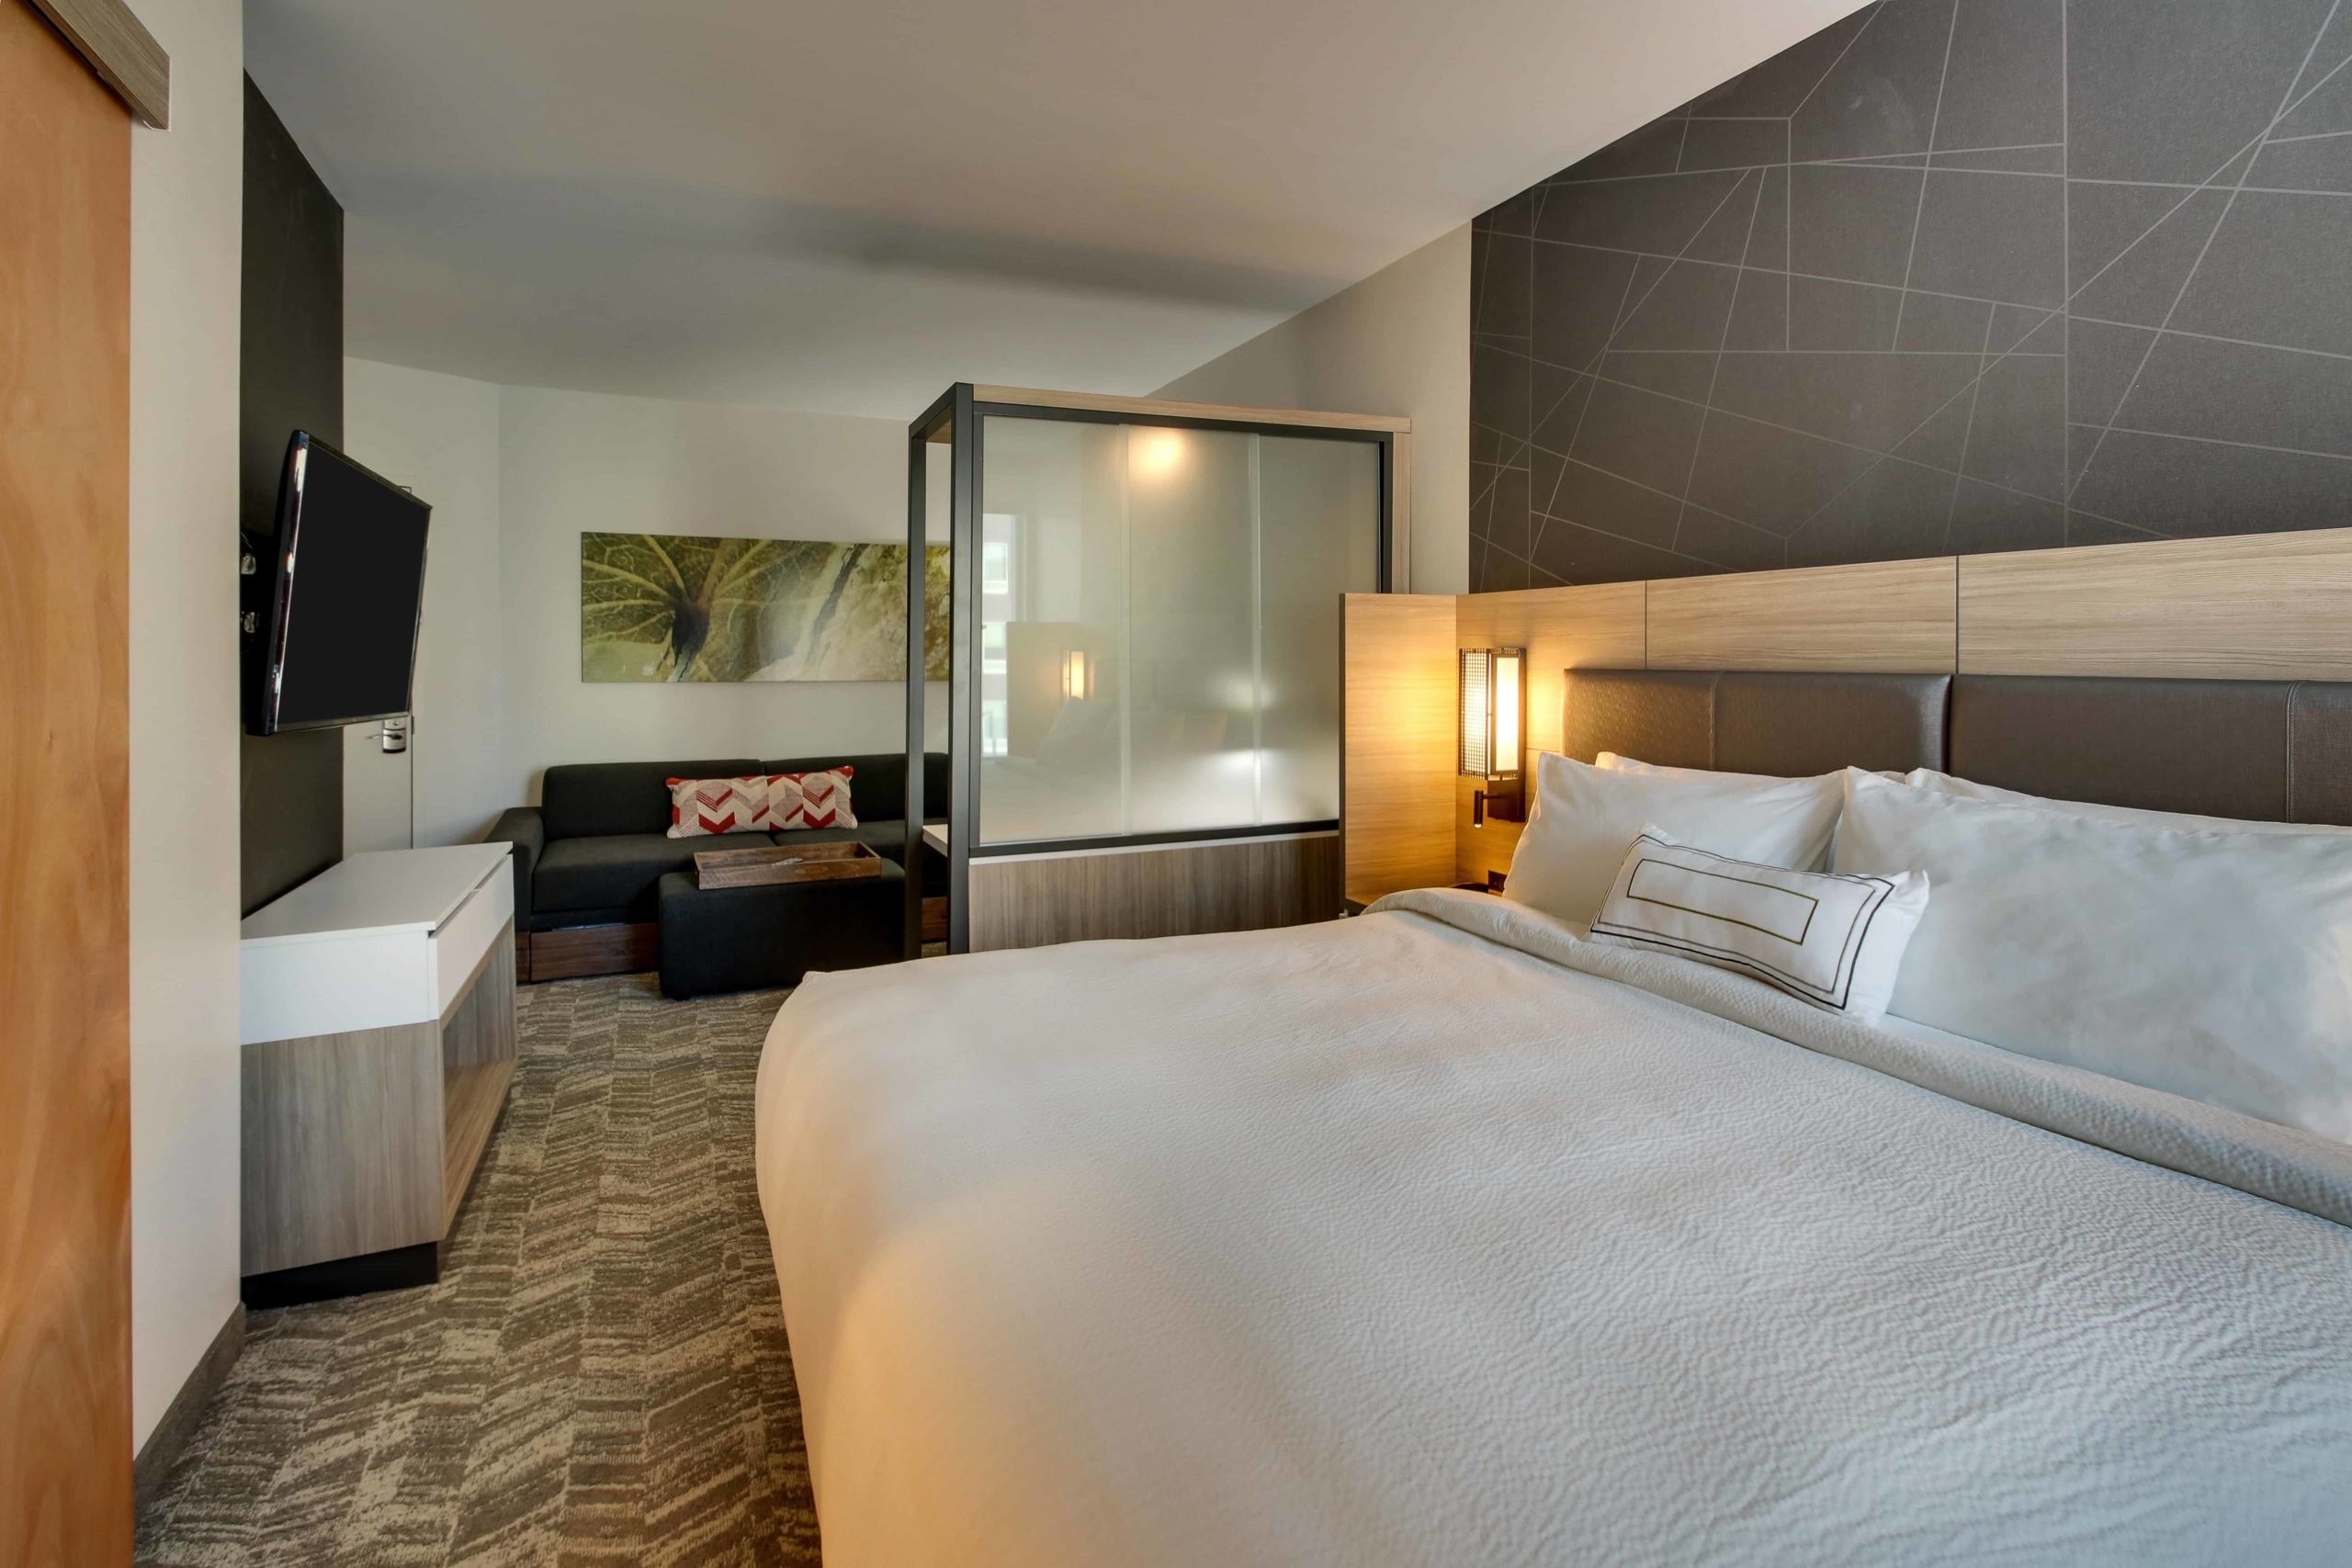 approved Hotel Photography of springHill Suites Gulfport 0017 0016